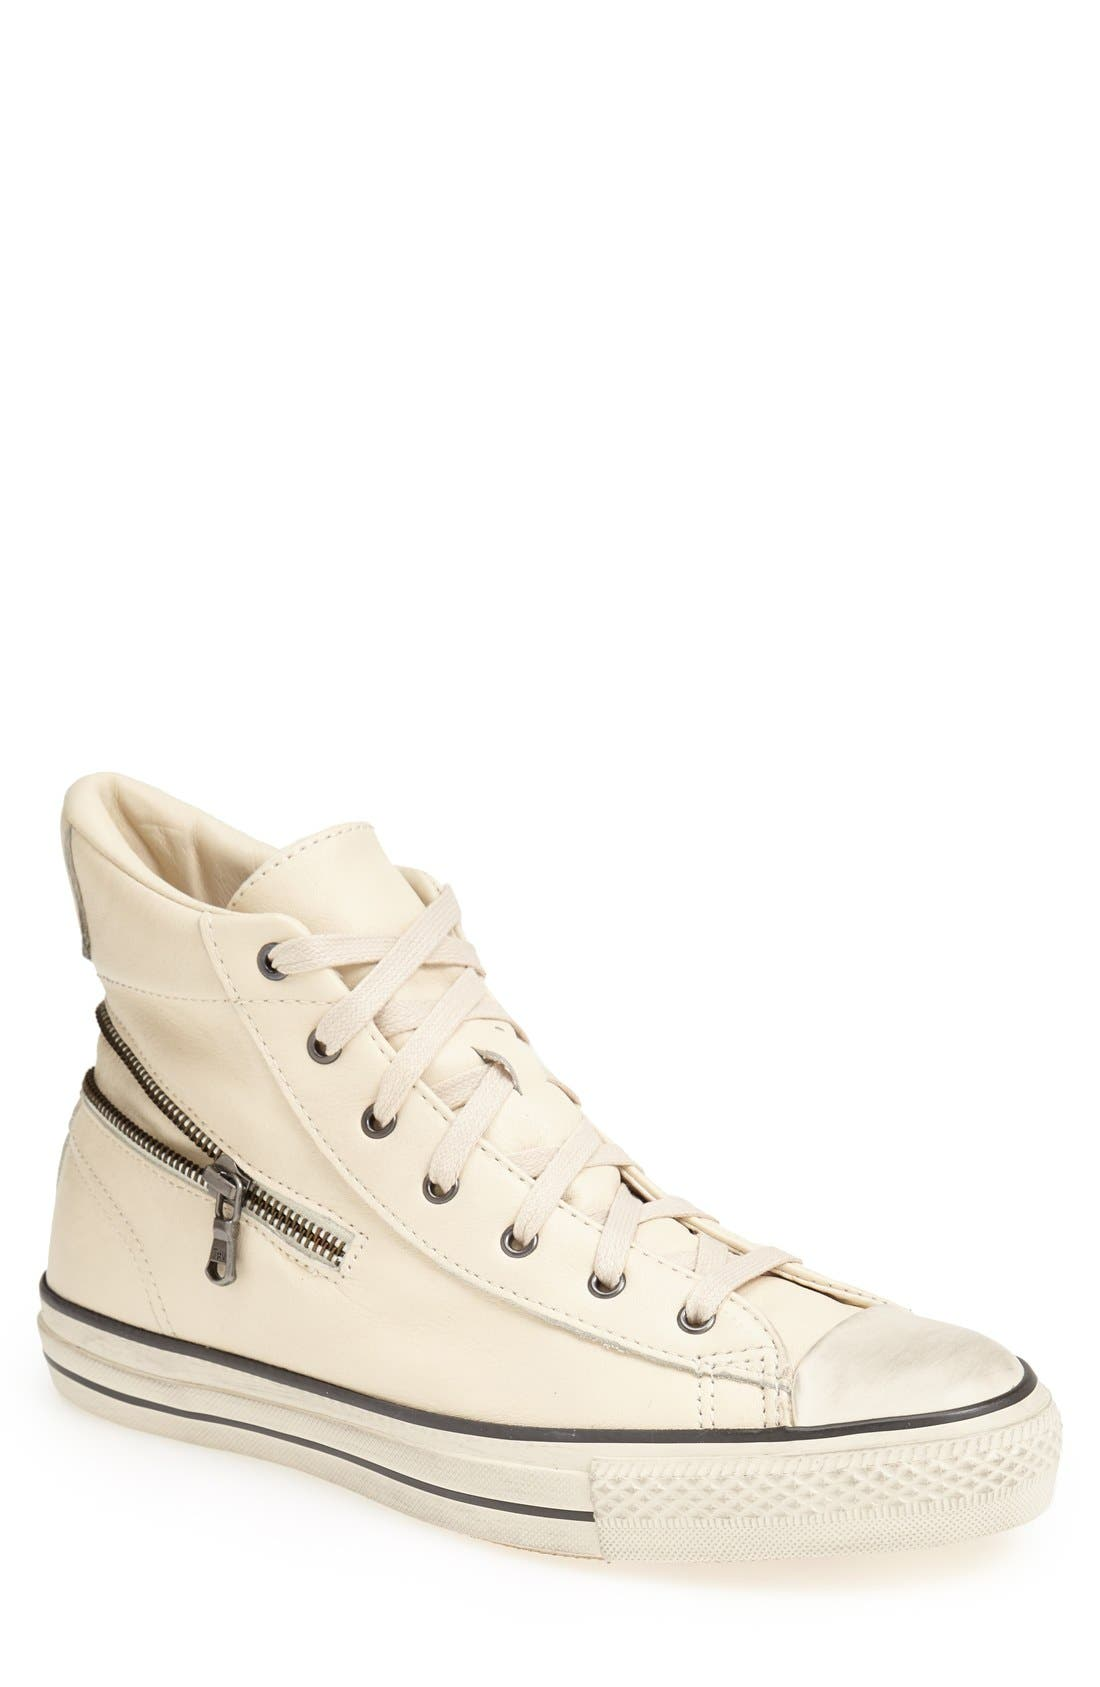 Alternate Image 1 Selected - Converse by John Varvatos Chuck Taylor® Zip Sneaker (Men)